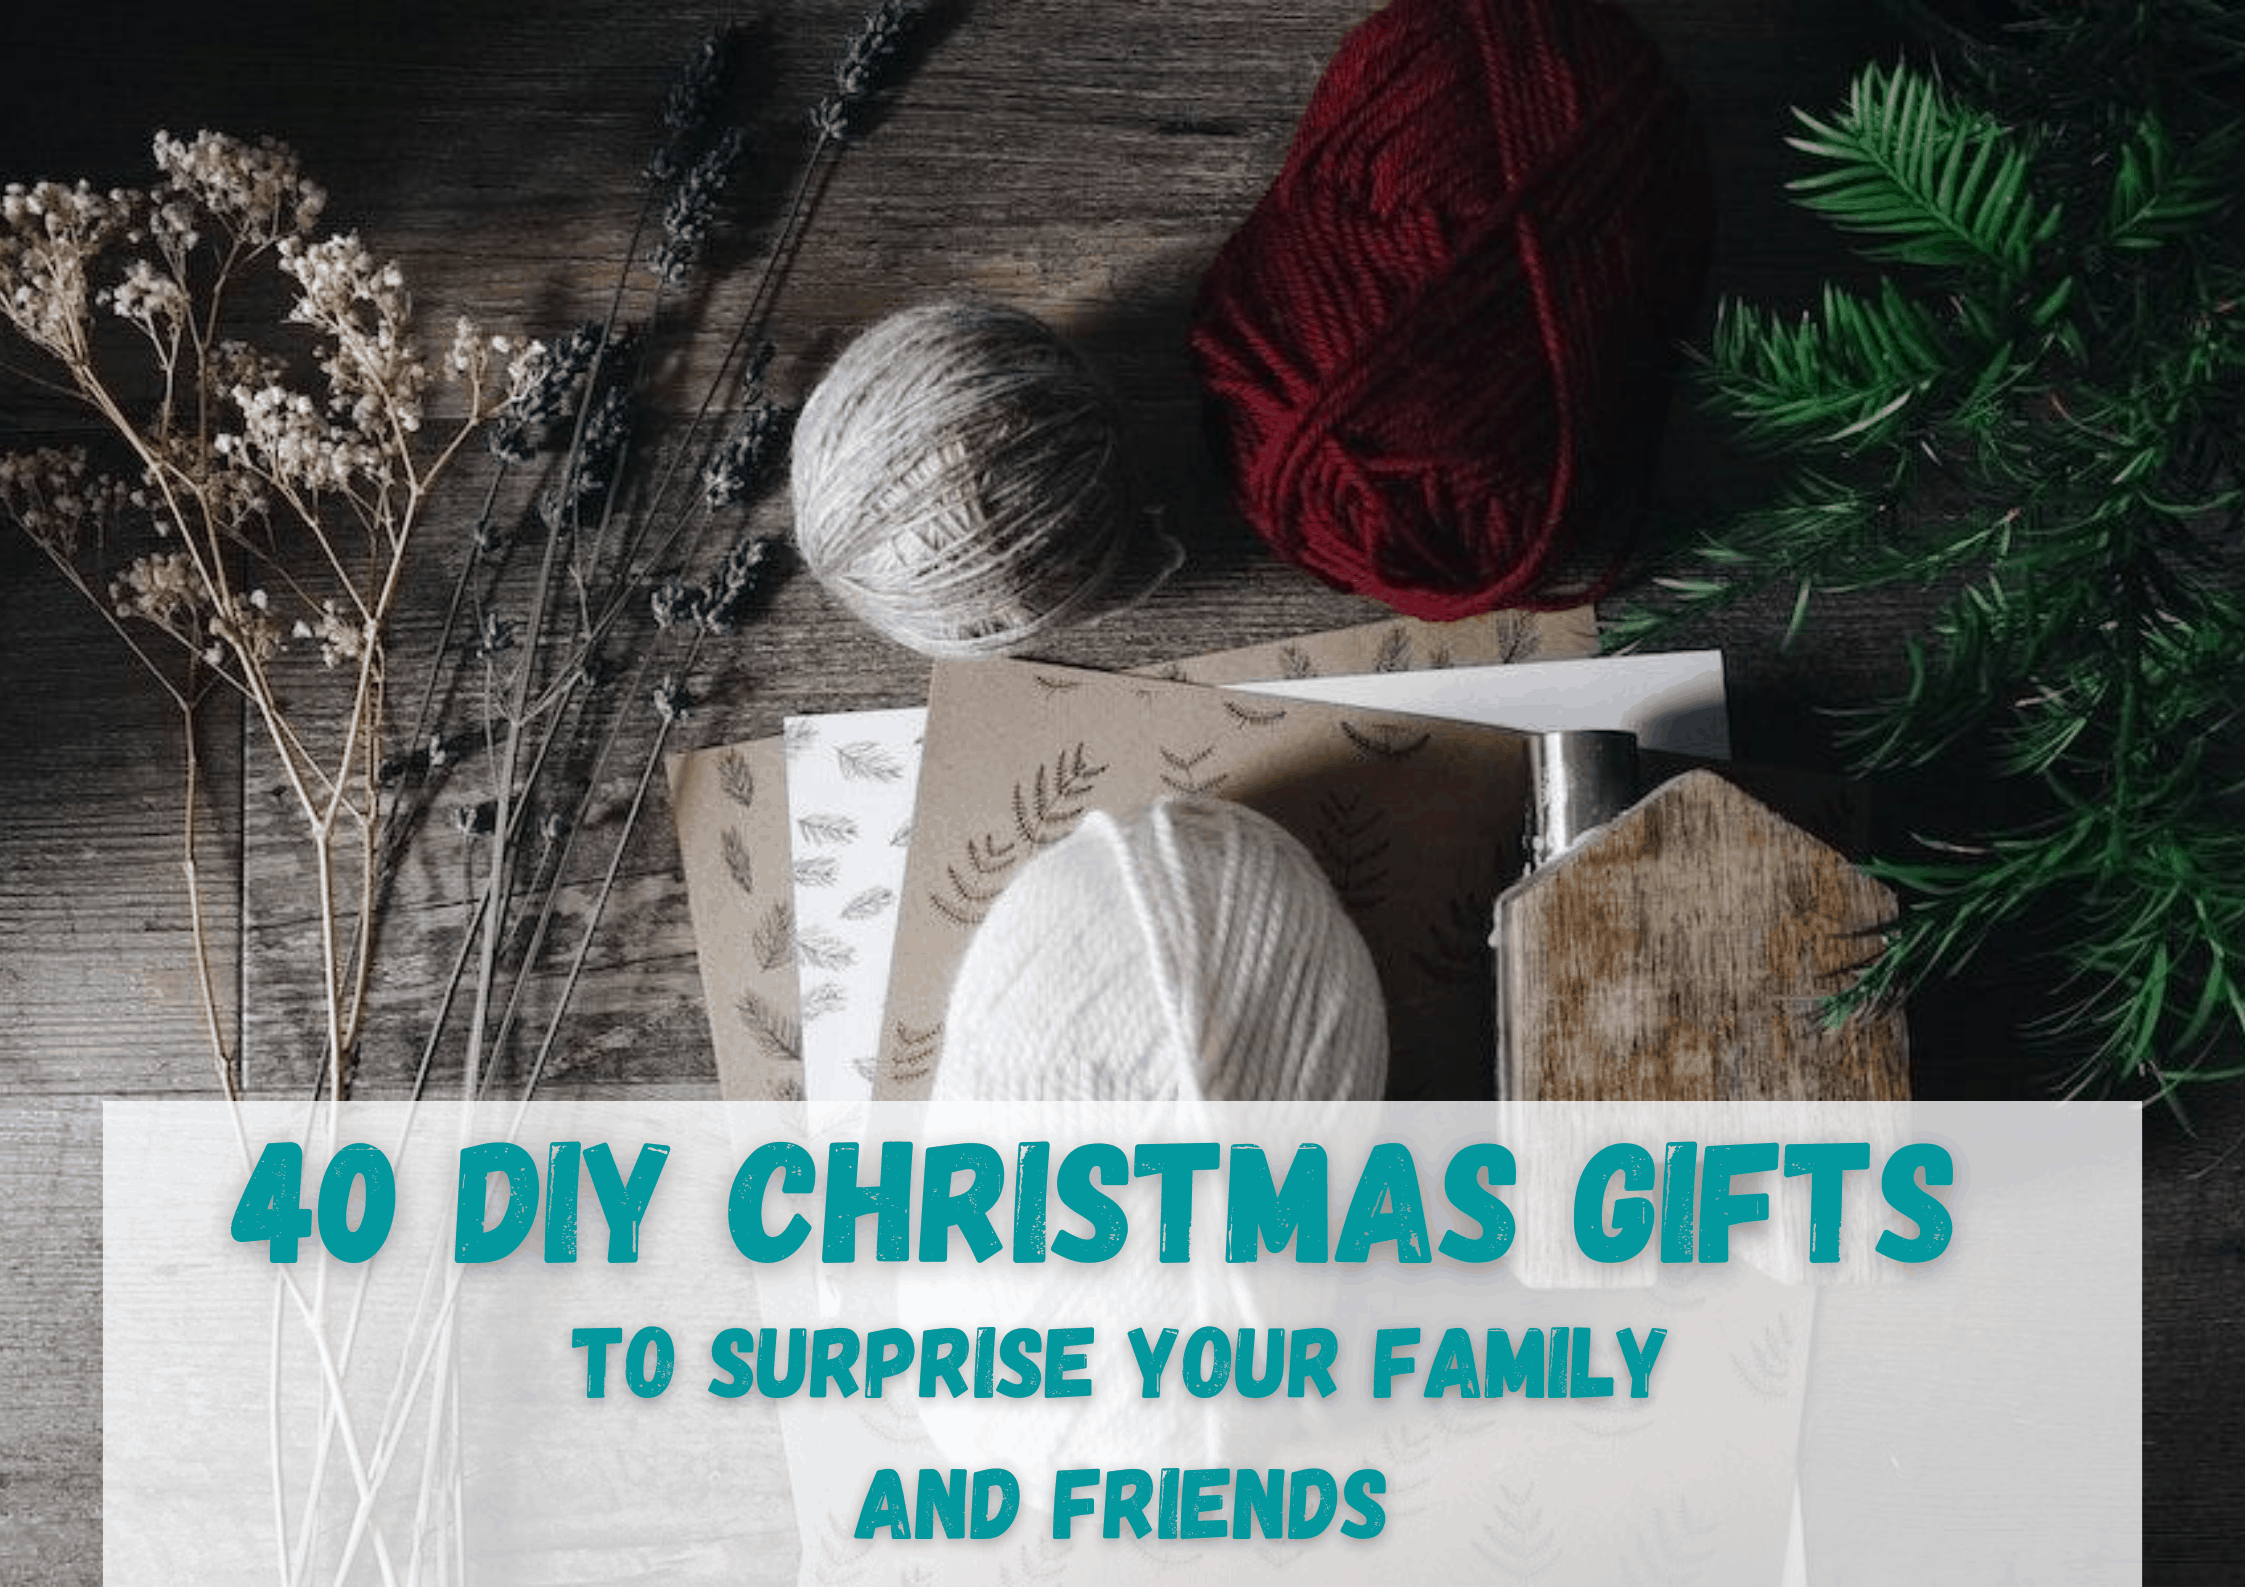 40 DIY Christmas Gifts to Surprise Your Family and Friends